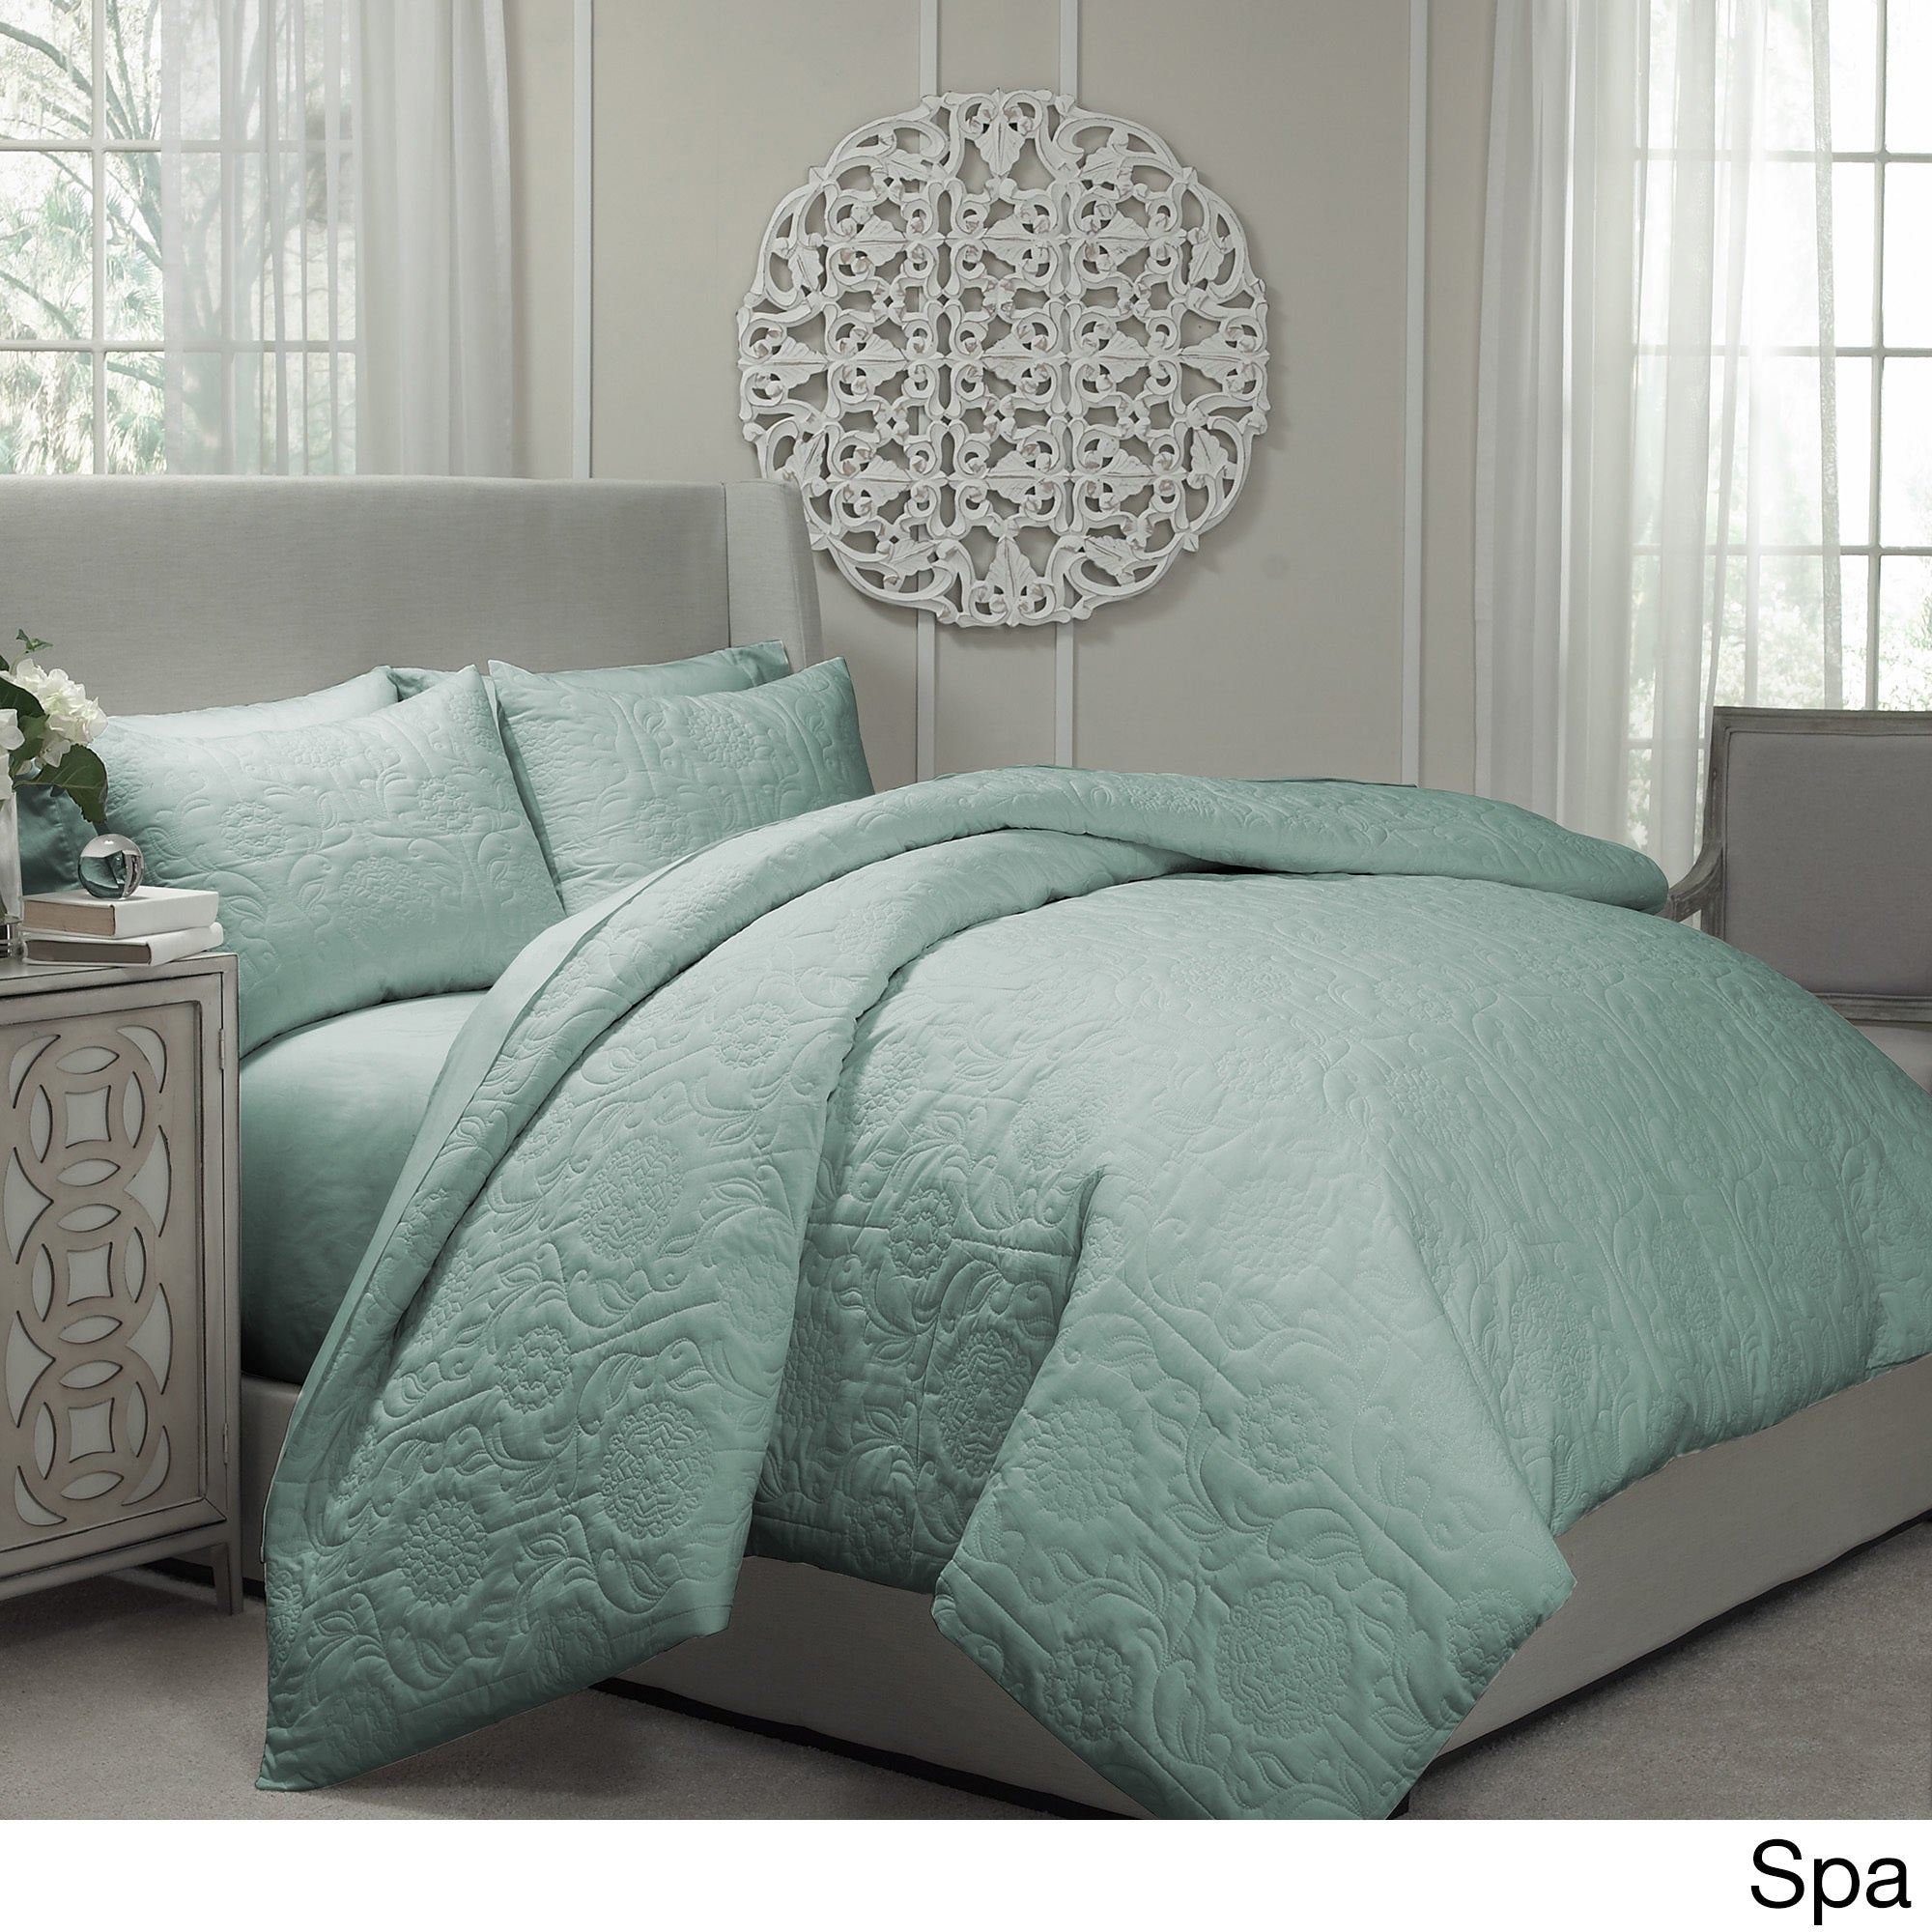 Awesome Gracewood Hollow Sutherland Quilted Coverlet And Duvet Cover Ensemble    Free Shipping Today   Overstock.com   18775602